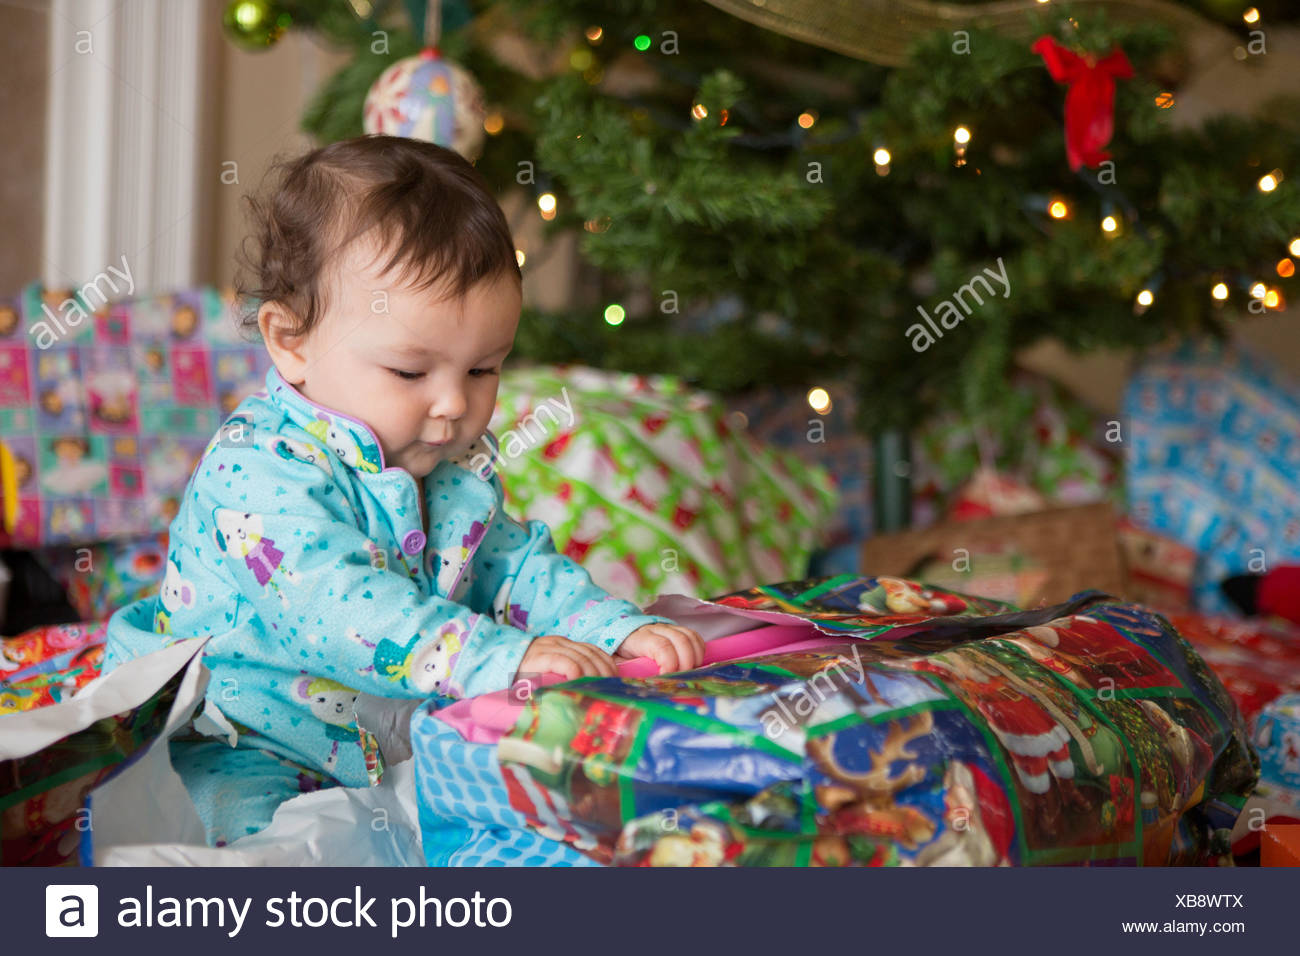 Baby girl opening presents on her first Christmas - Stock Image